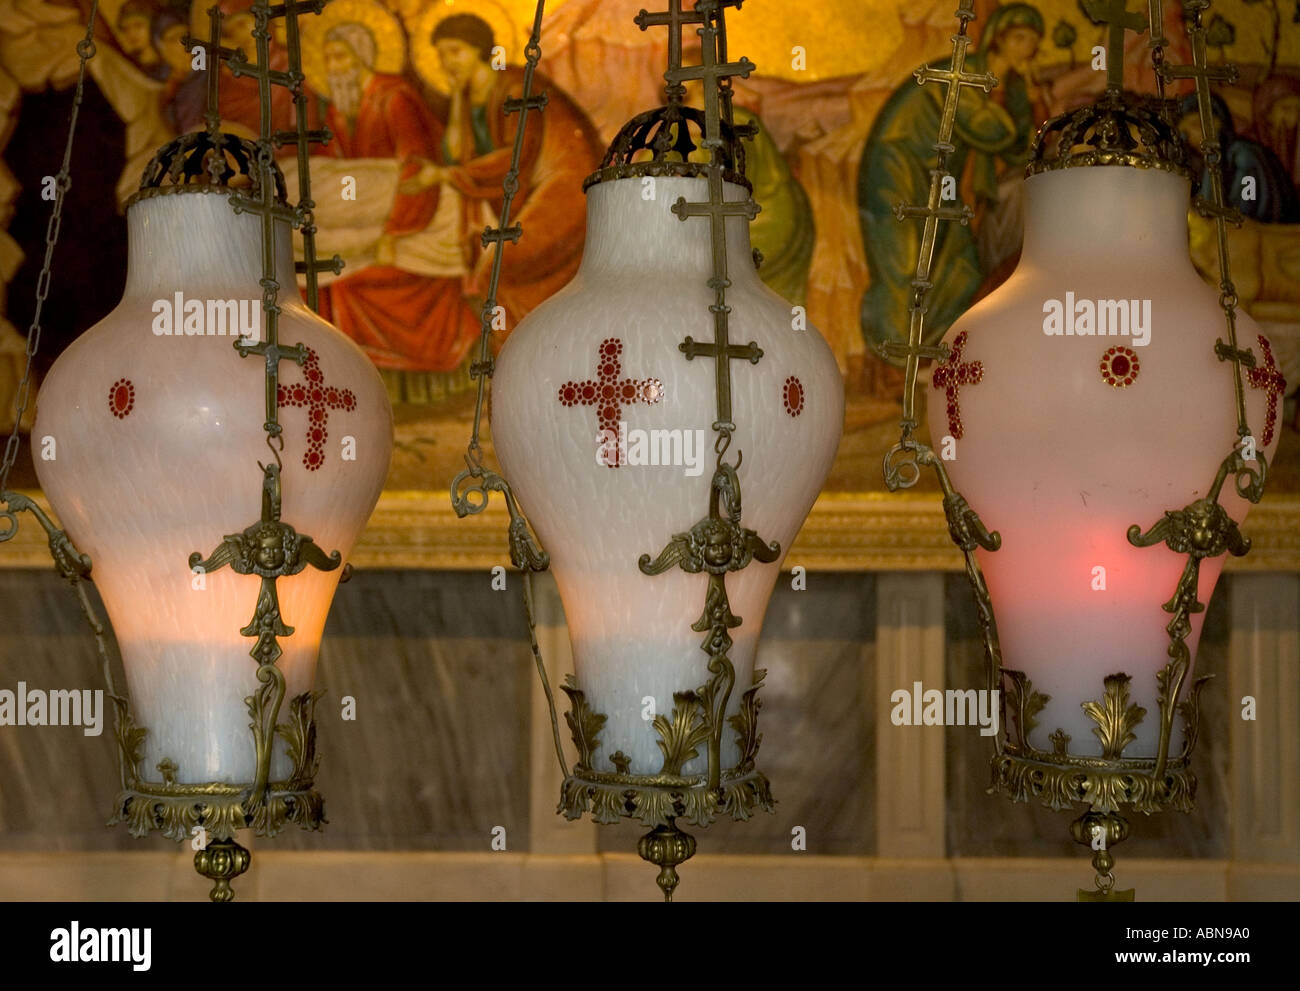 Israel Jerusalem Old City basilica of the Holy Sepulchre the Stone of anointing 3 greek orthodox decorated Alabaster candle holders above the stone with fresque in bkgd - Stock Image